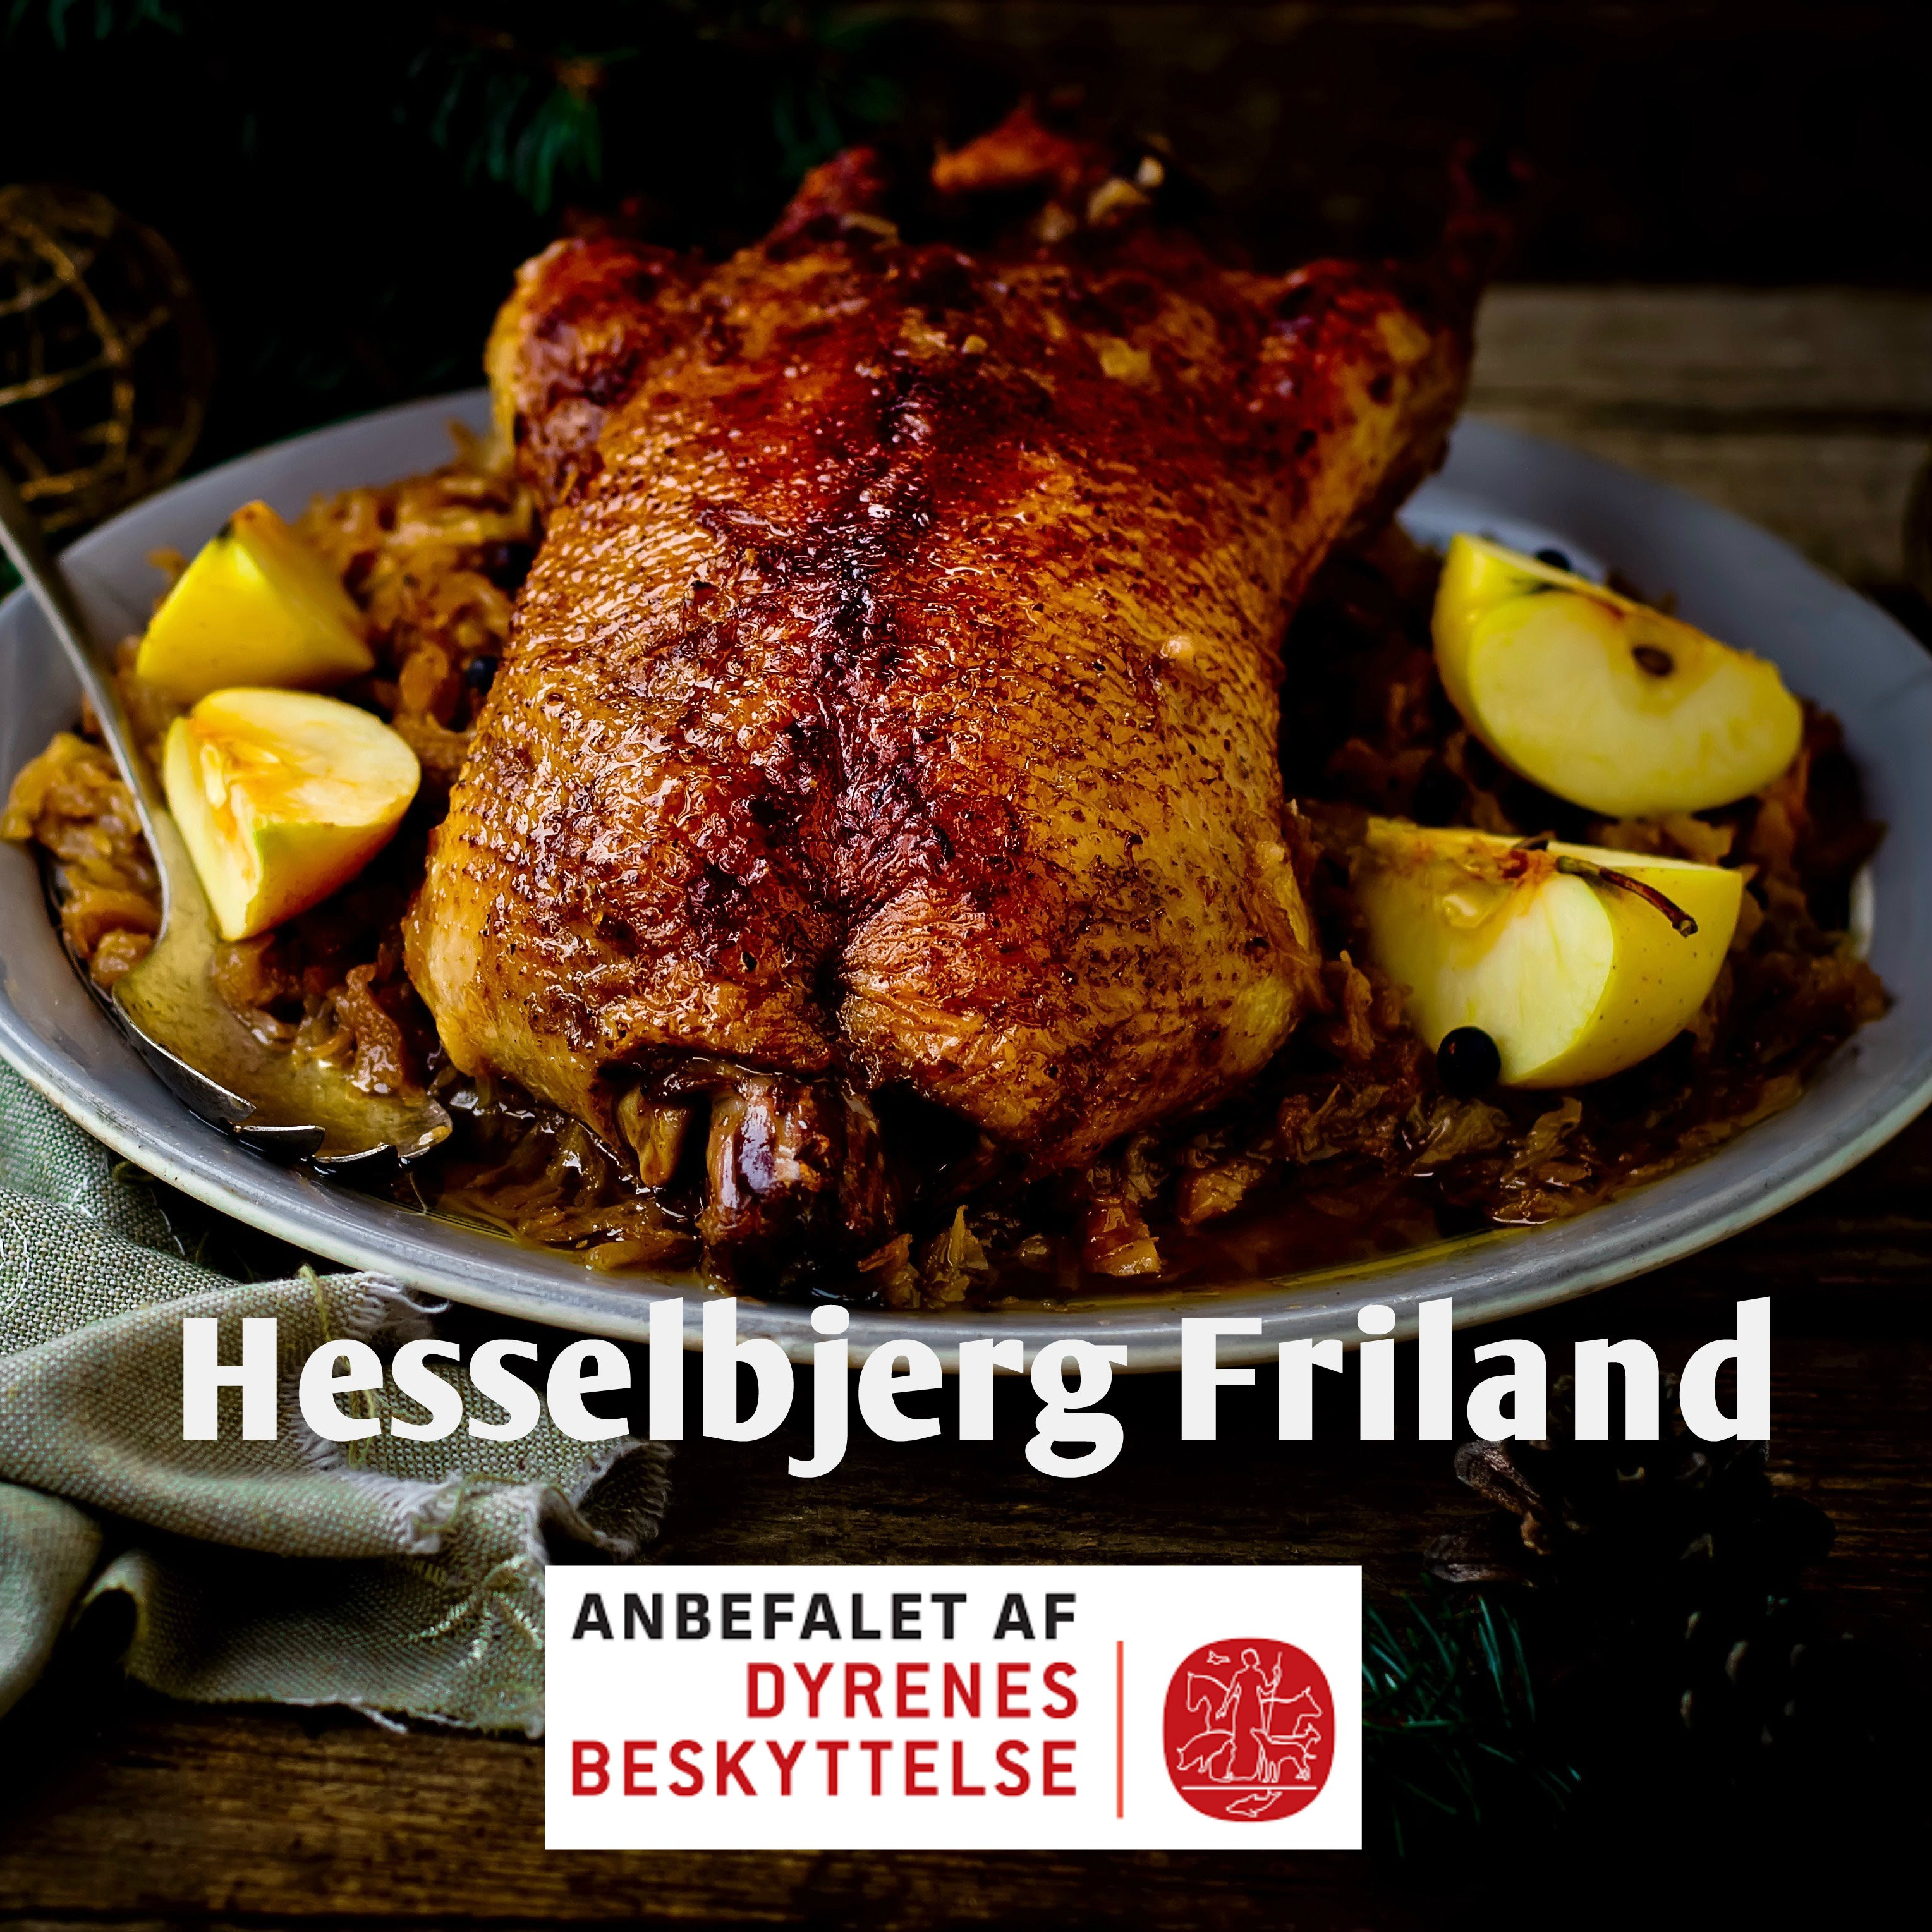 And. Hesselbjerg Friland